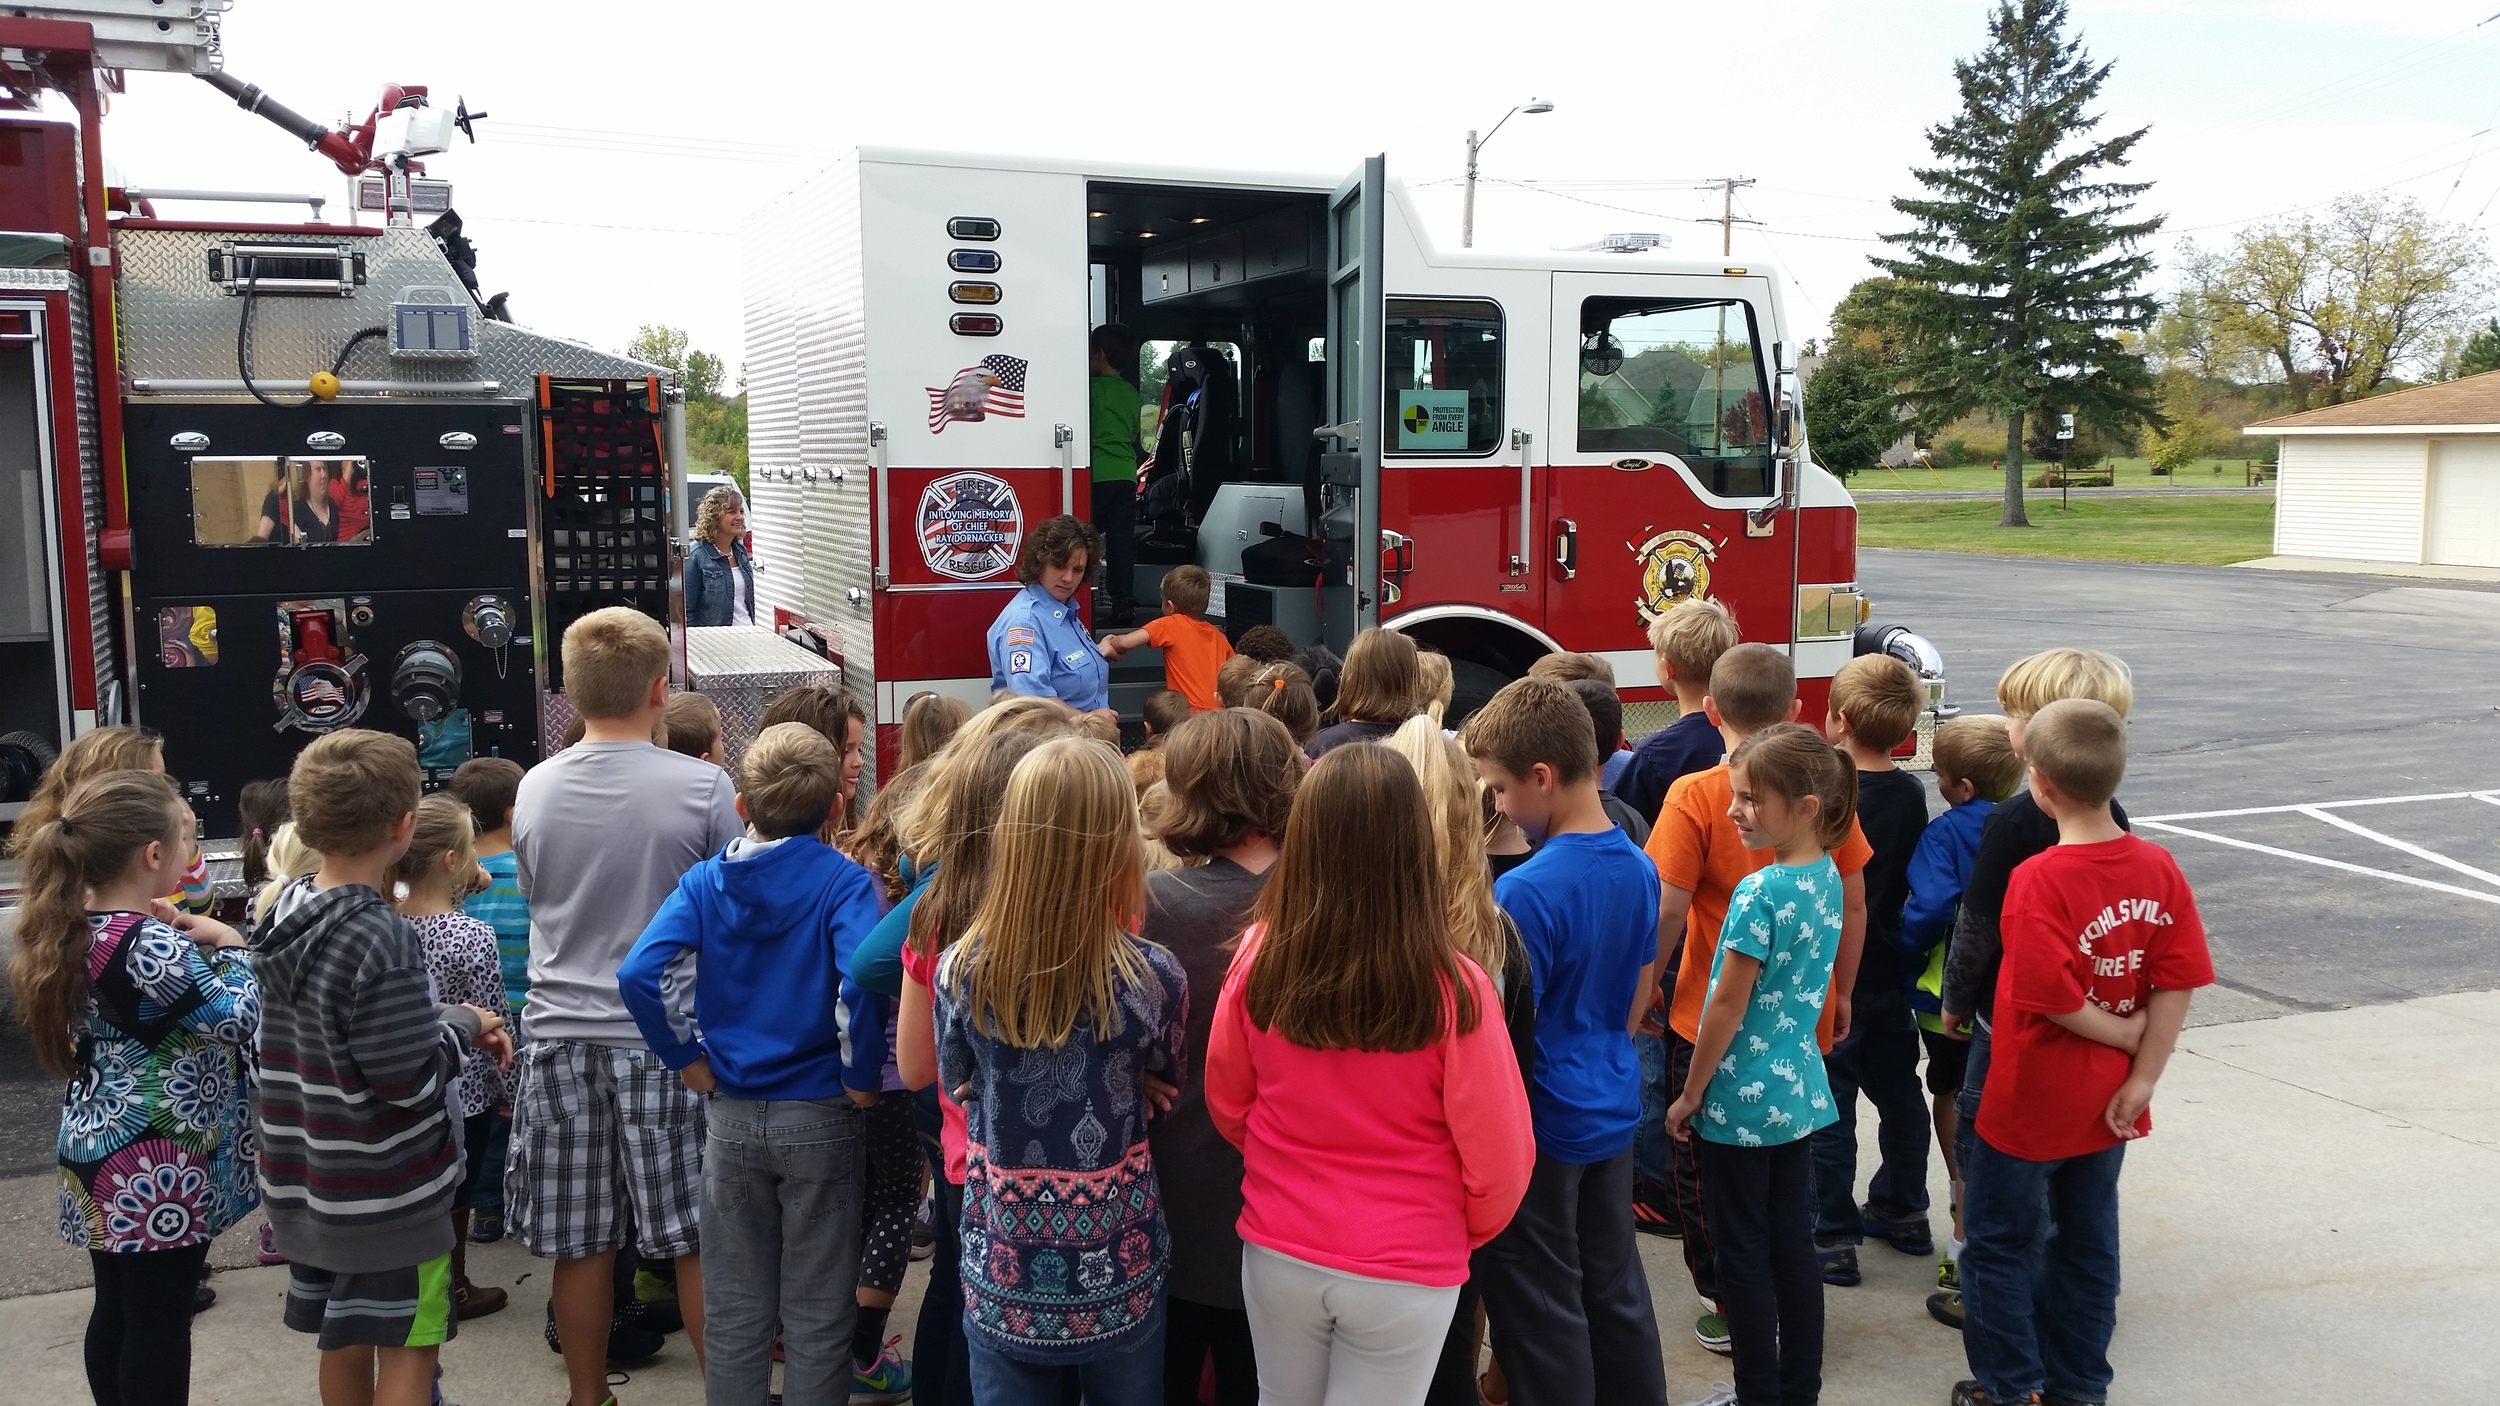 Taking a close look at the fire truck